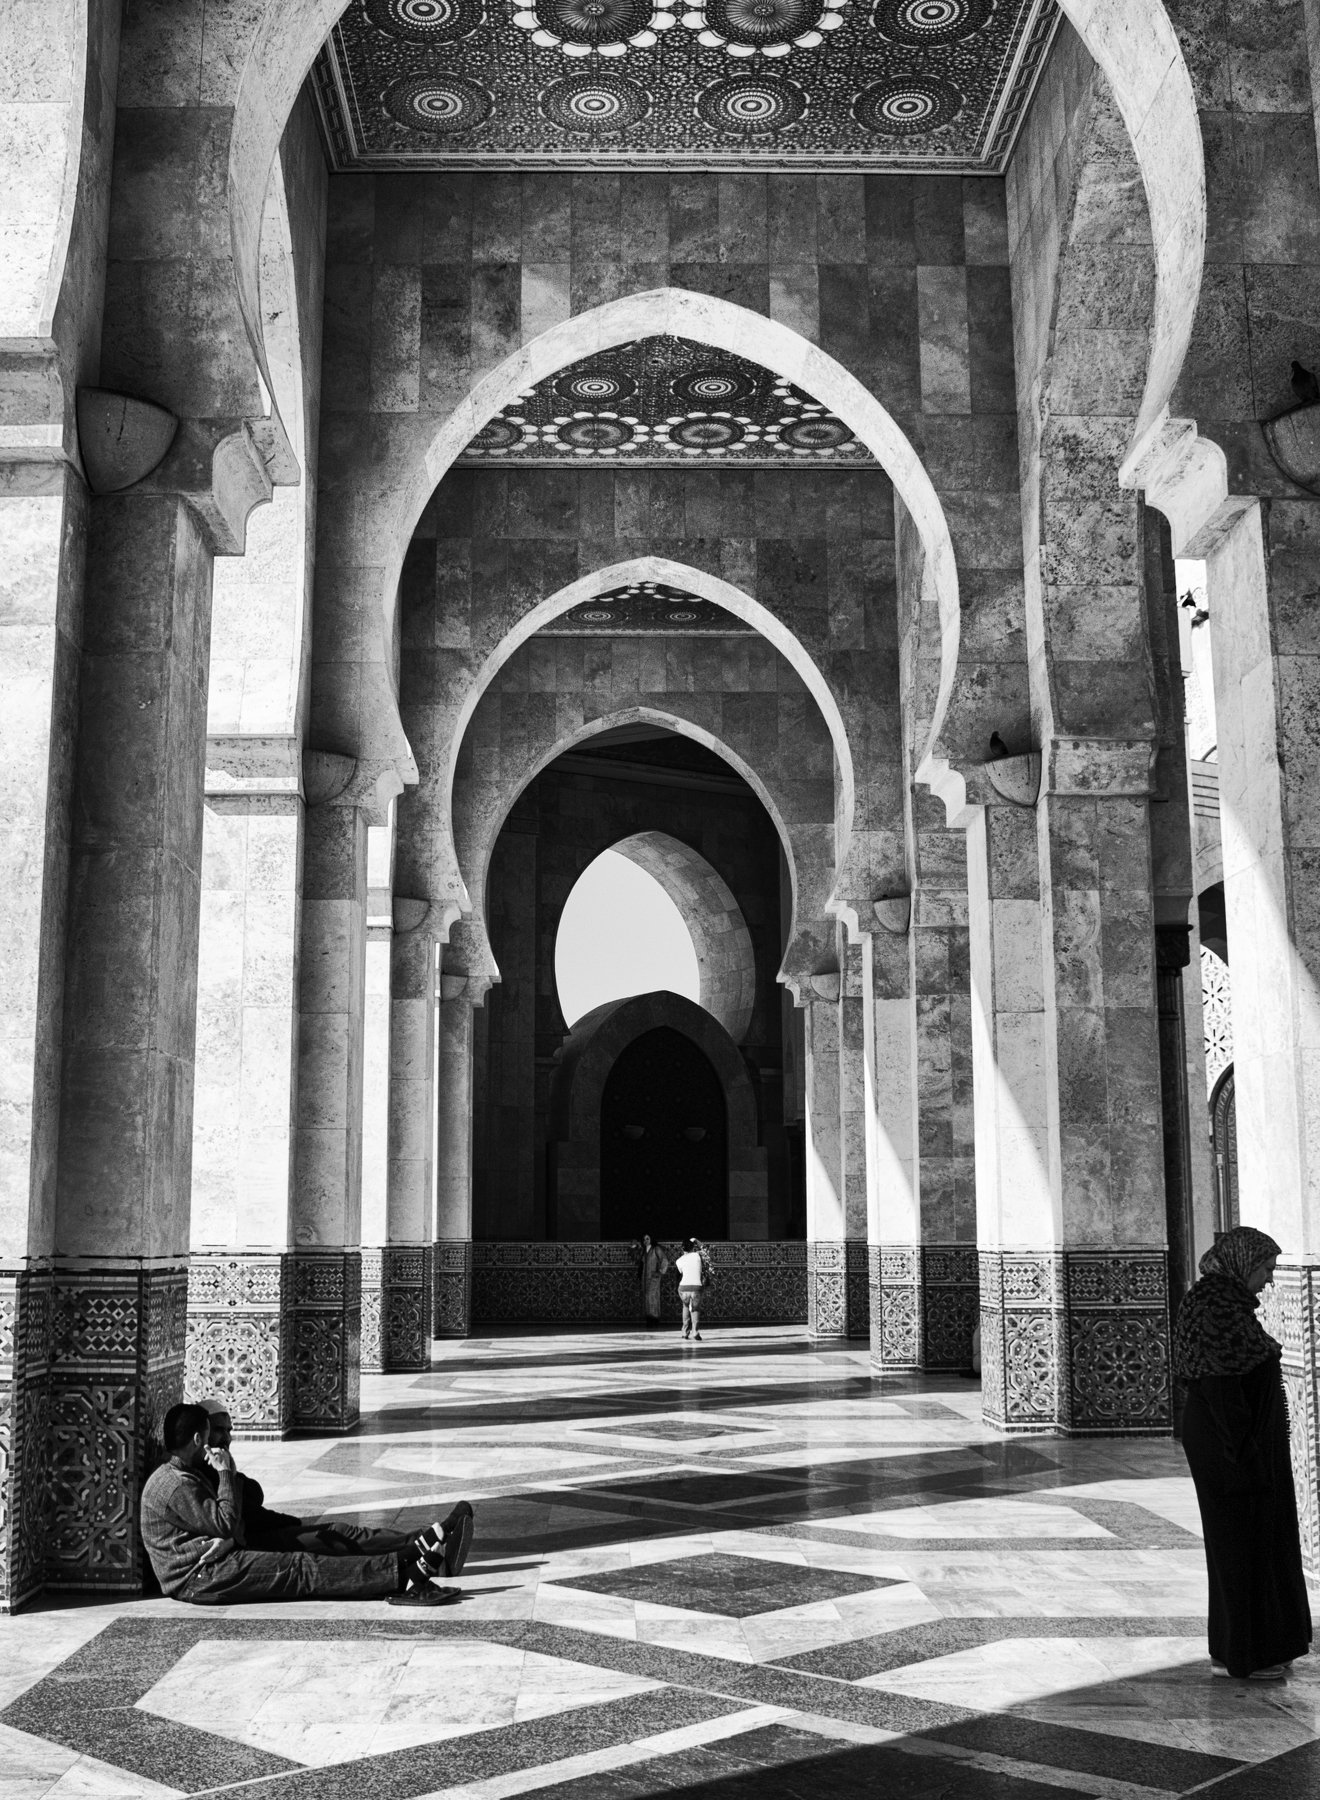 Morocco, Casablanca, Monochrome, Black and white, Street, Elena Beregatnova